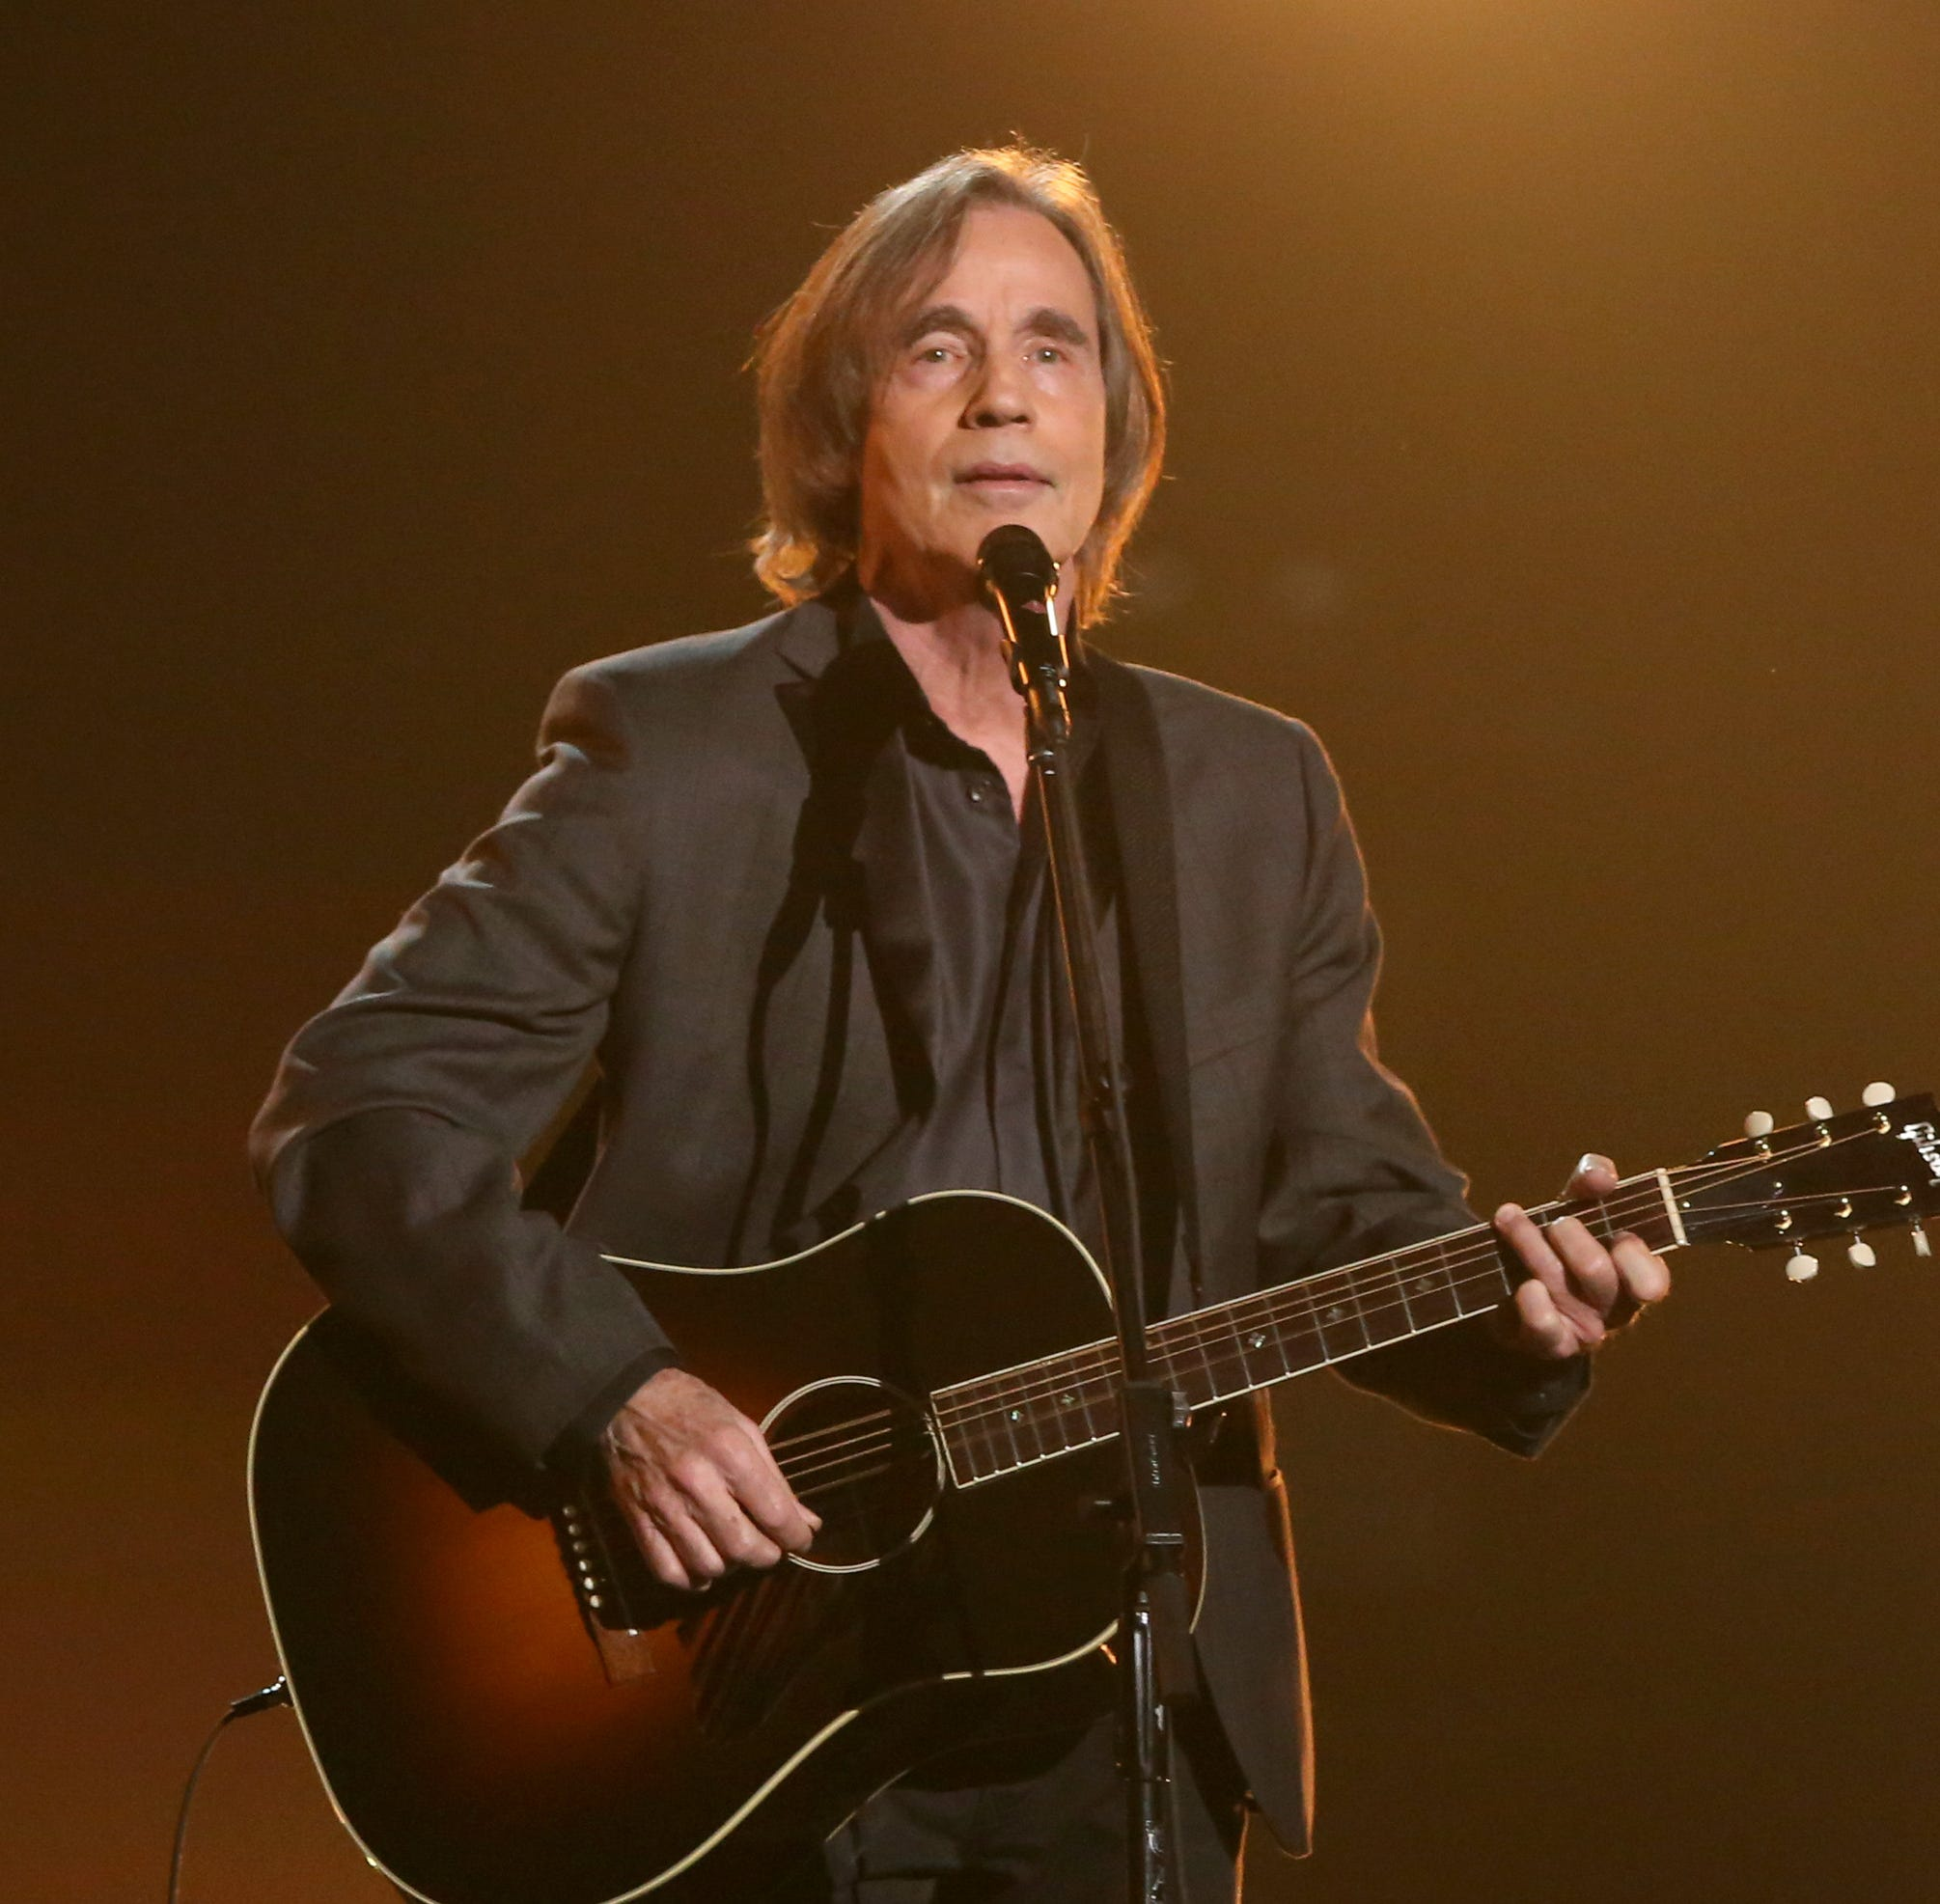 Rock star Jackson Browne bringing acoustic tour to Naples